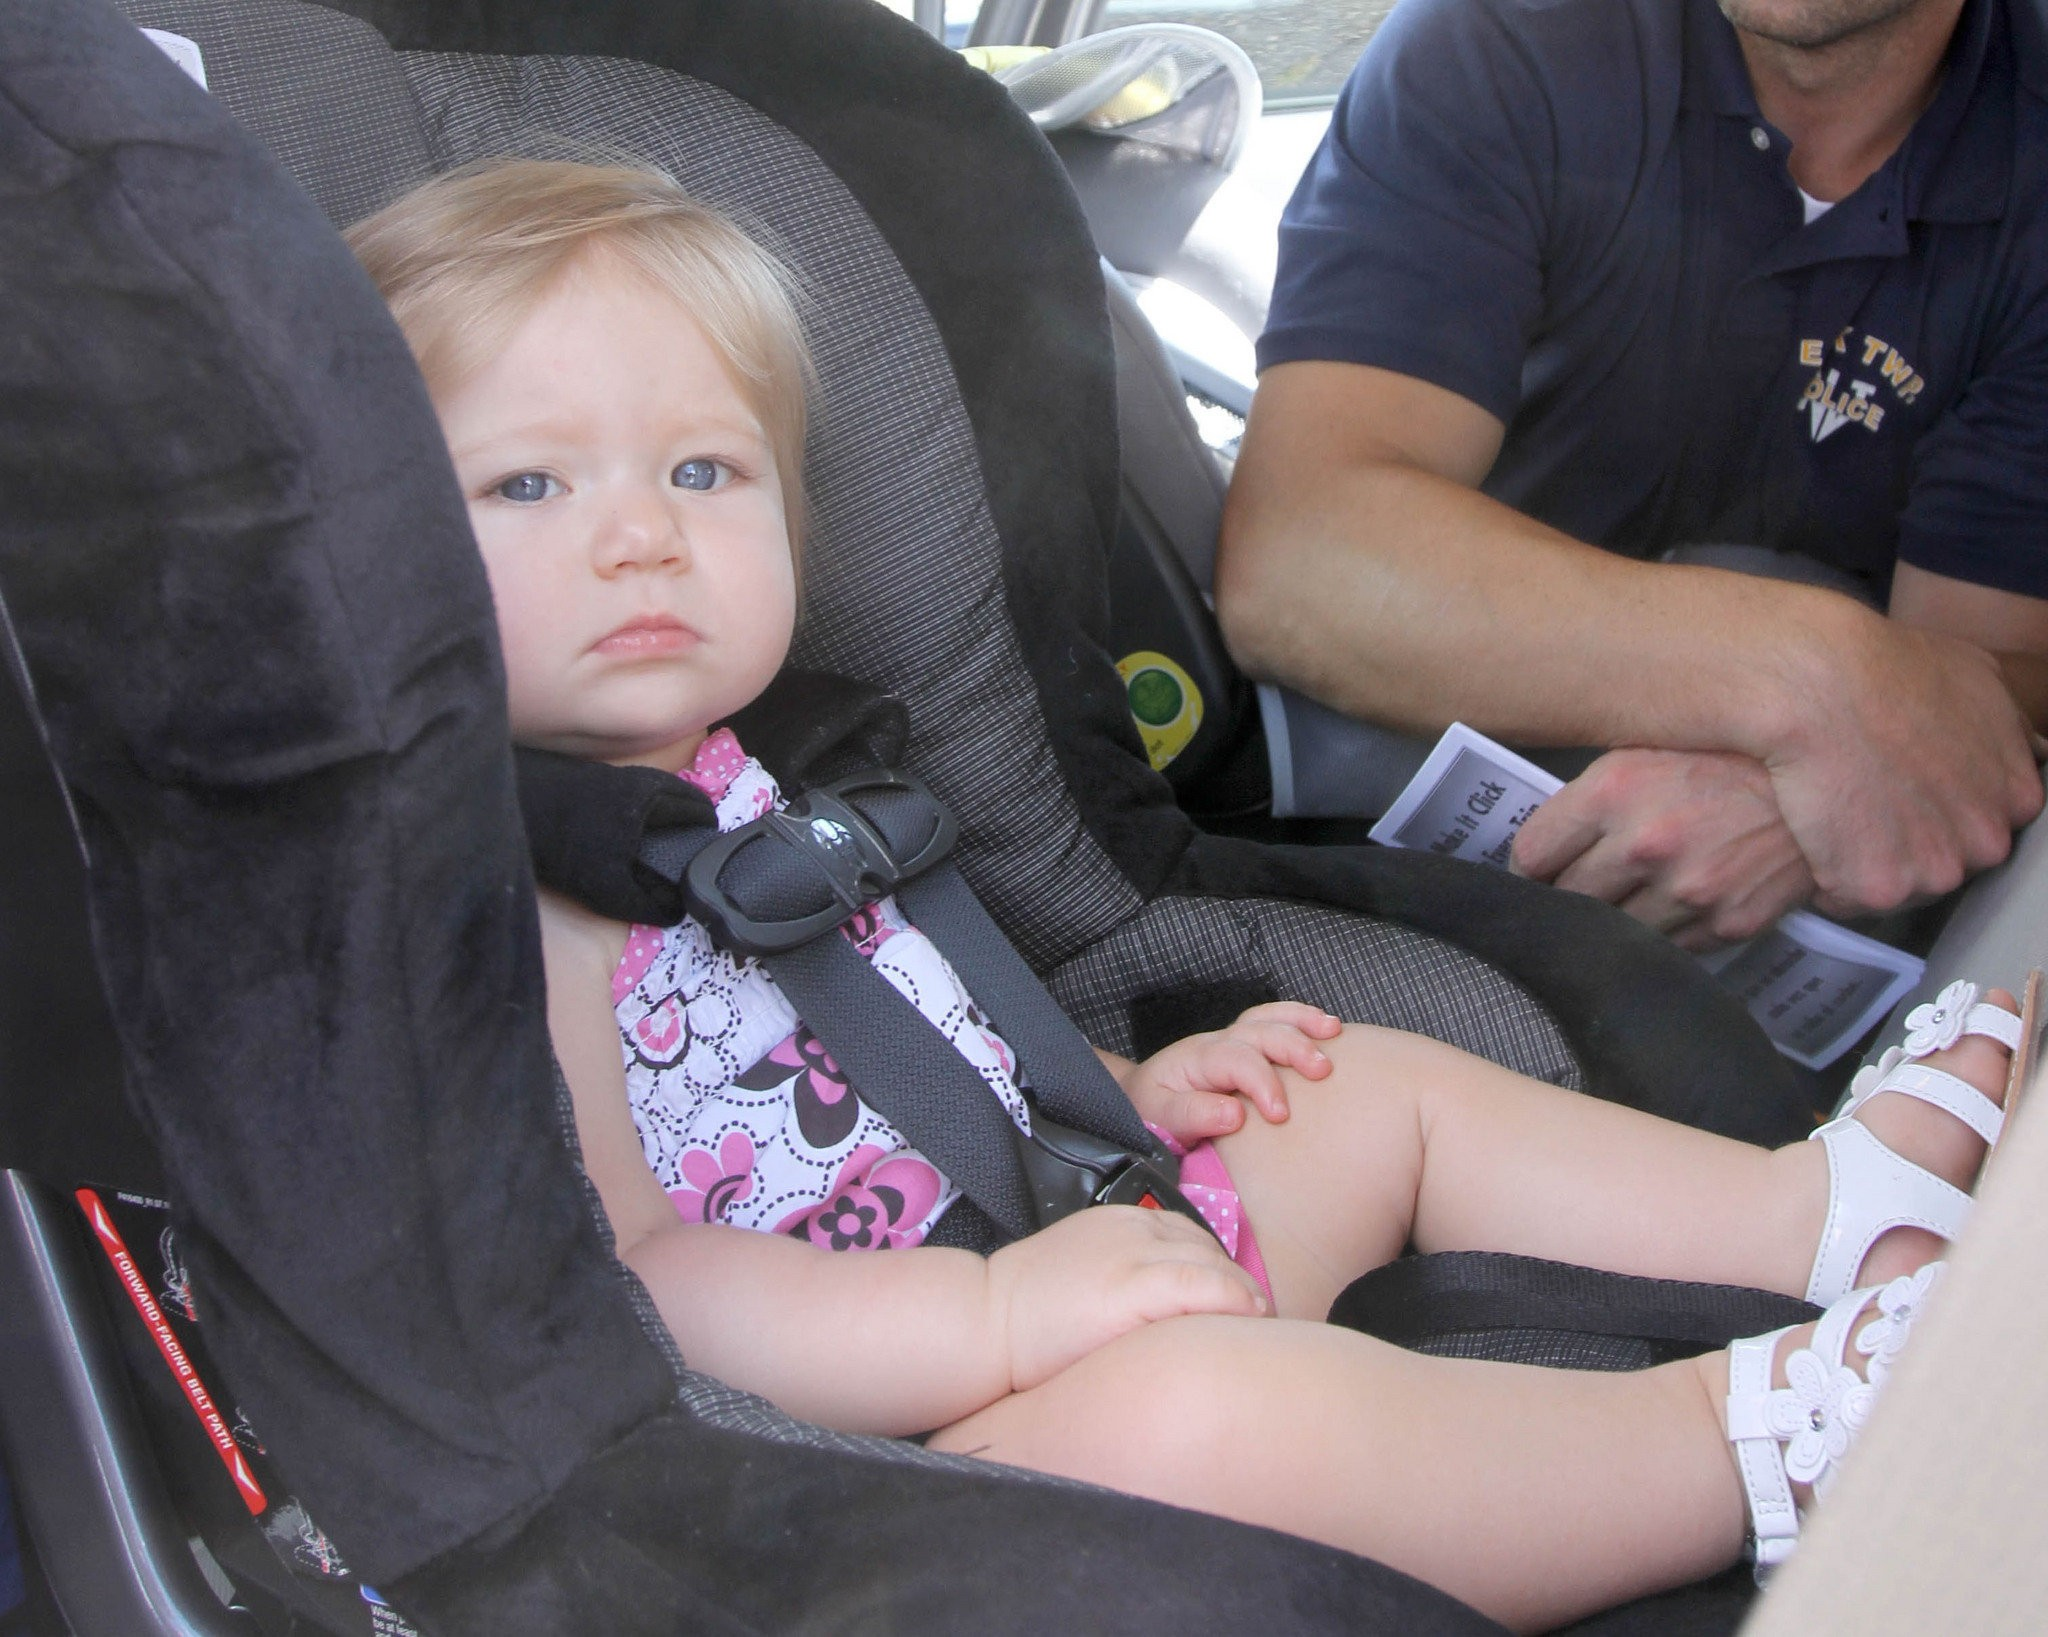 Rear Facing Car Seat Law Nj New Pa Law Takes Effect Kids Under 2 In Rear Facing Car